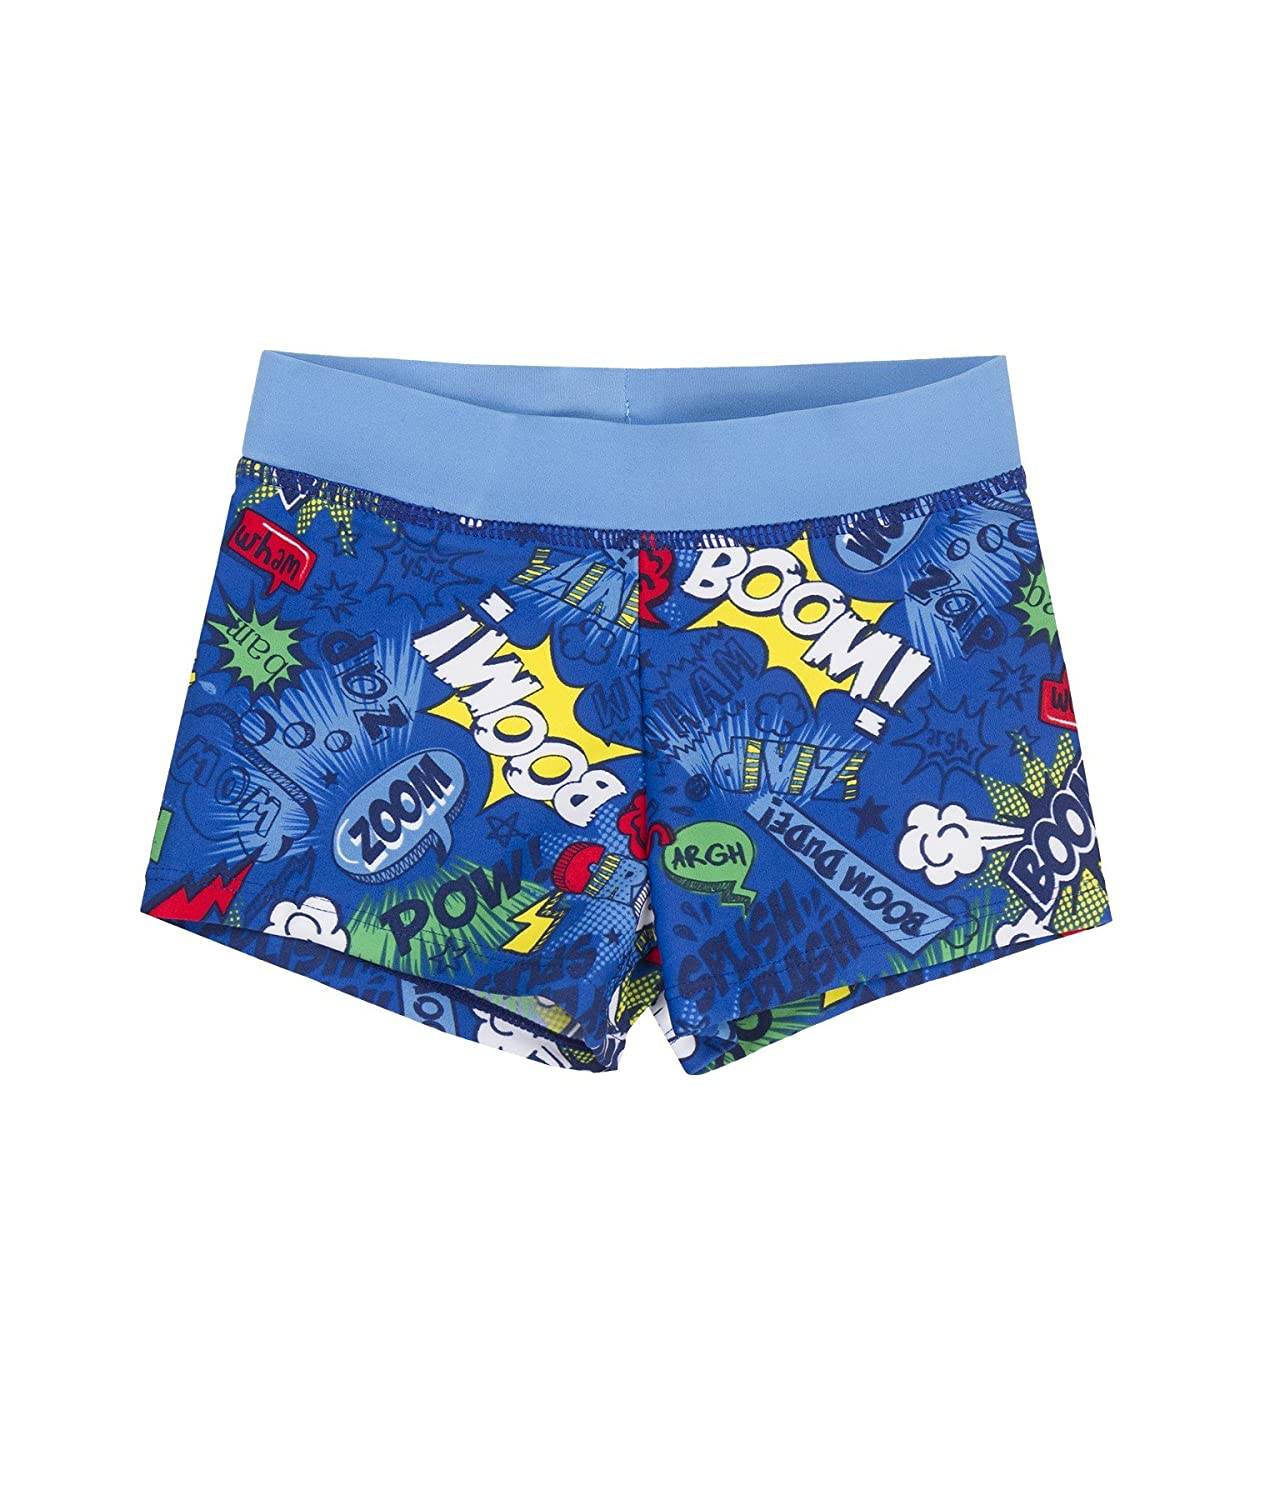 Kanz Boy's Swim Trunks Kanz Boy's Swim Trunks 1837612